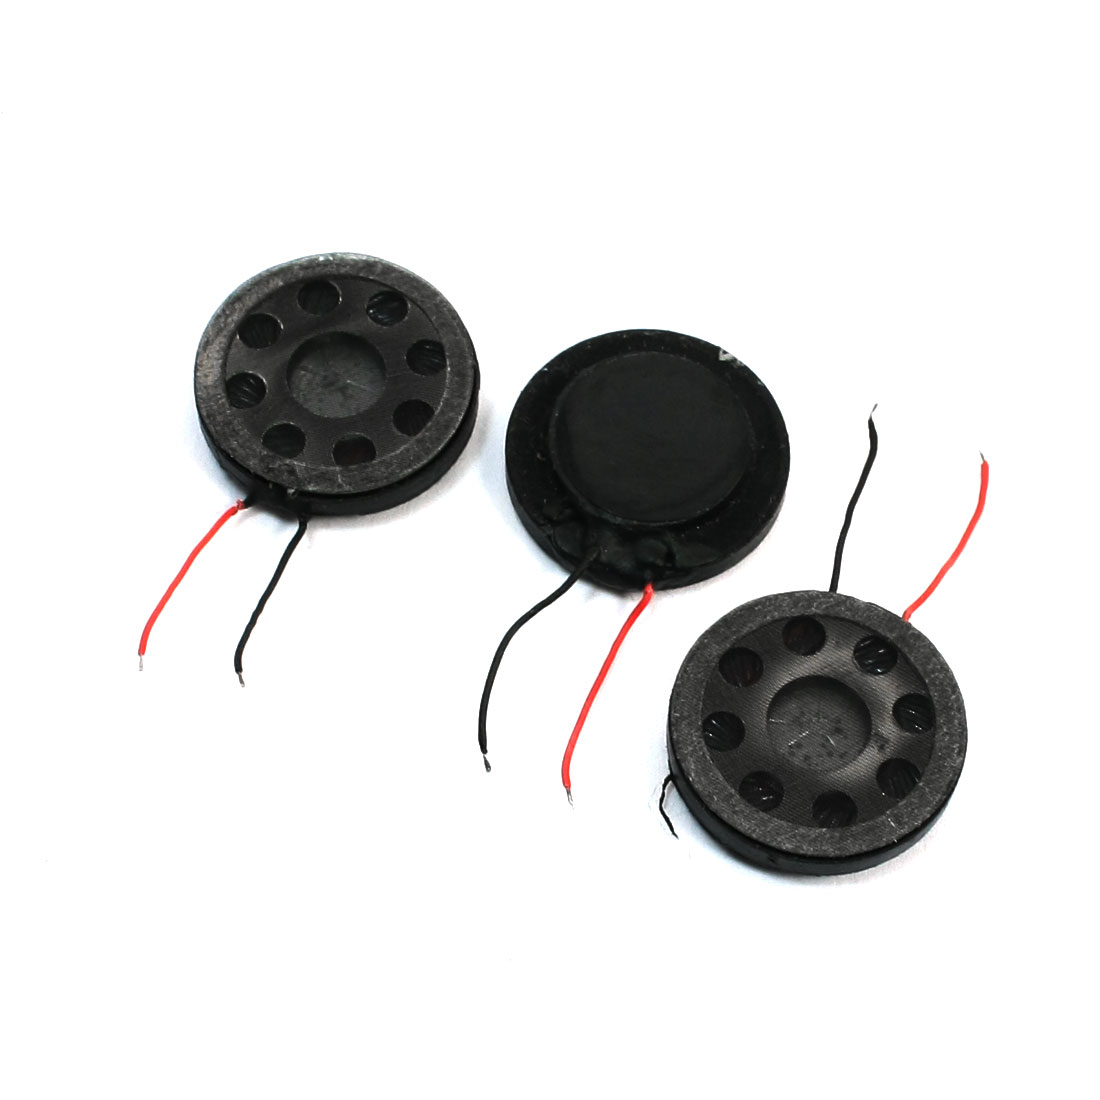 Unique Bargains 3pcs Laptop Tablet 20mm Magnet Internal SoundsSpeaker Horn 8 Ohm 1W